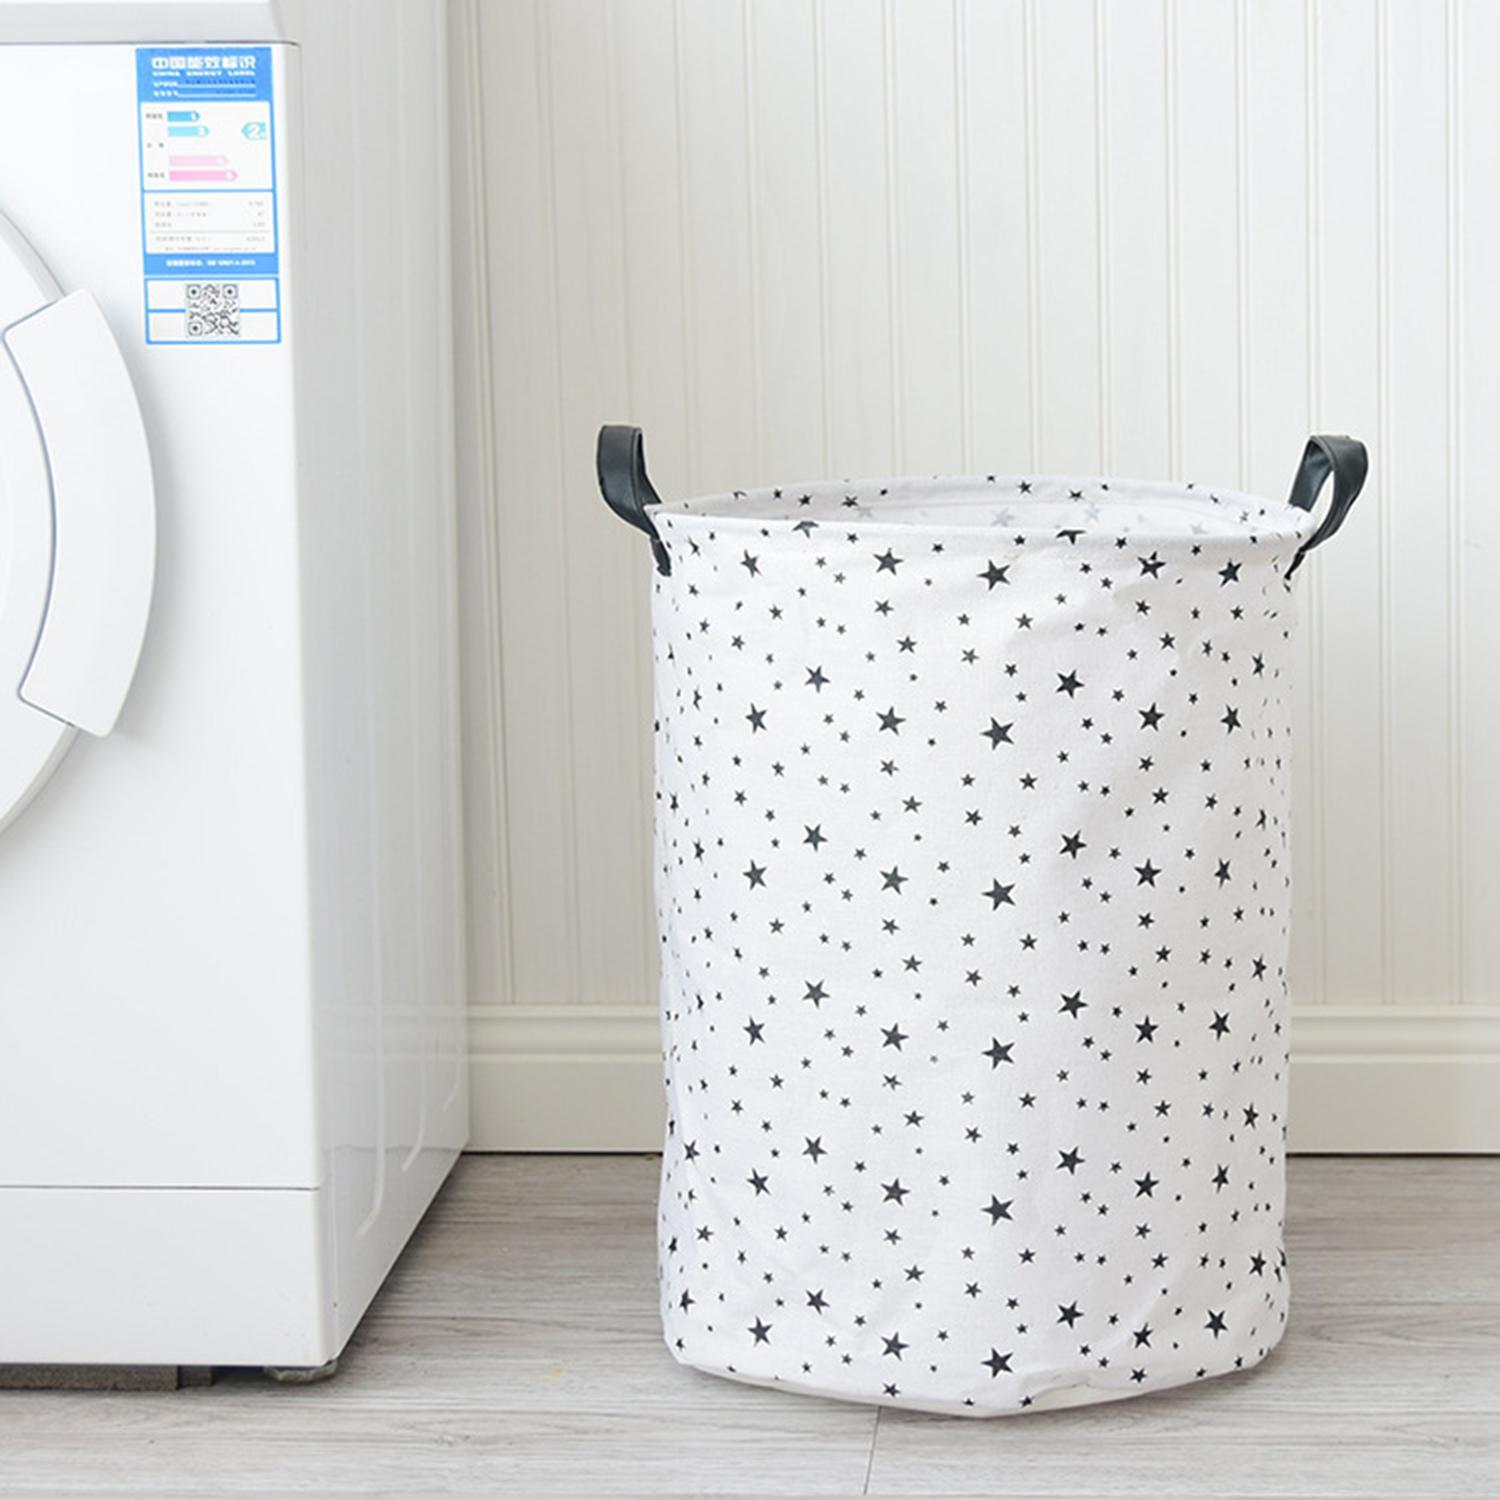 Multi-function Foldable Waterproof Laundry Basket Toys Indoor 300g Storage Small Stars Bucket White Black